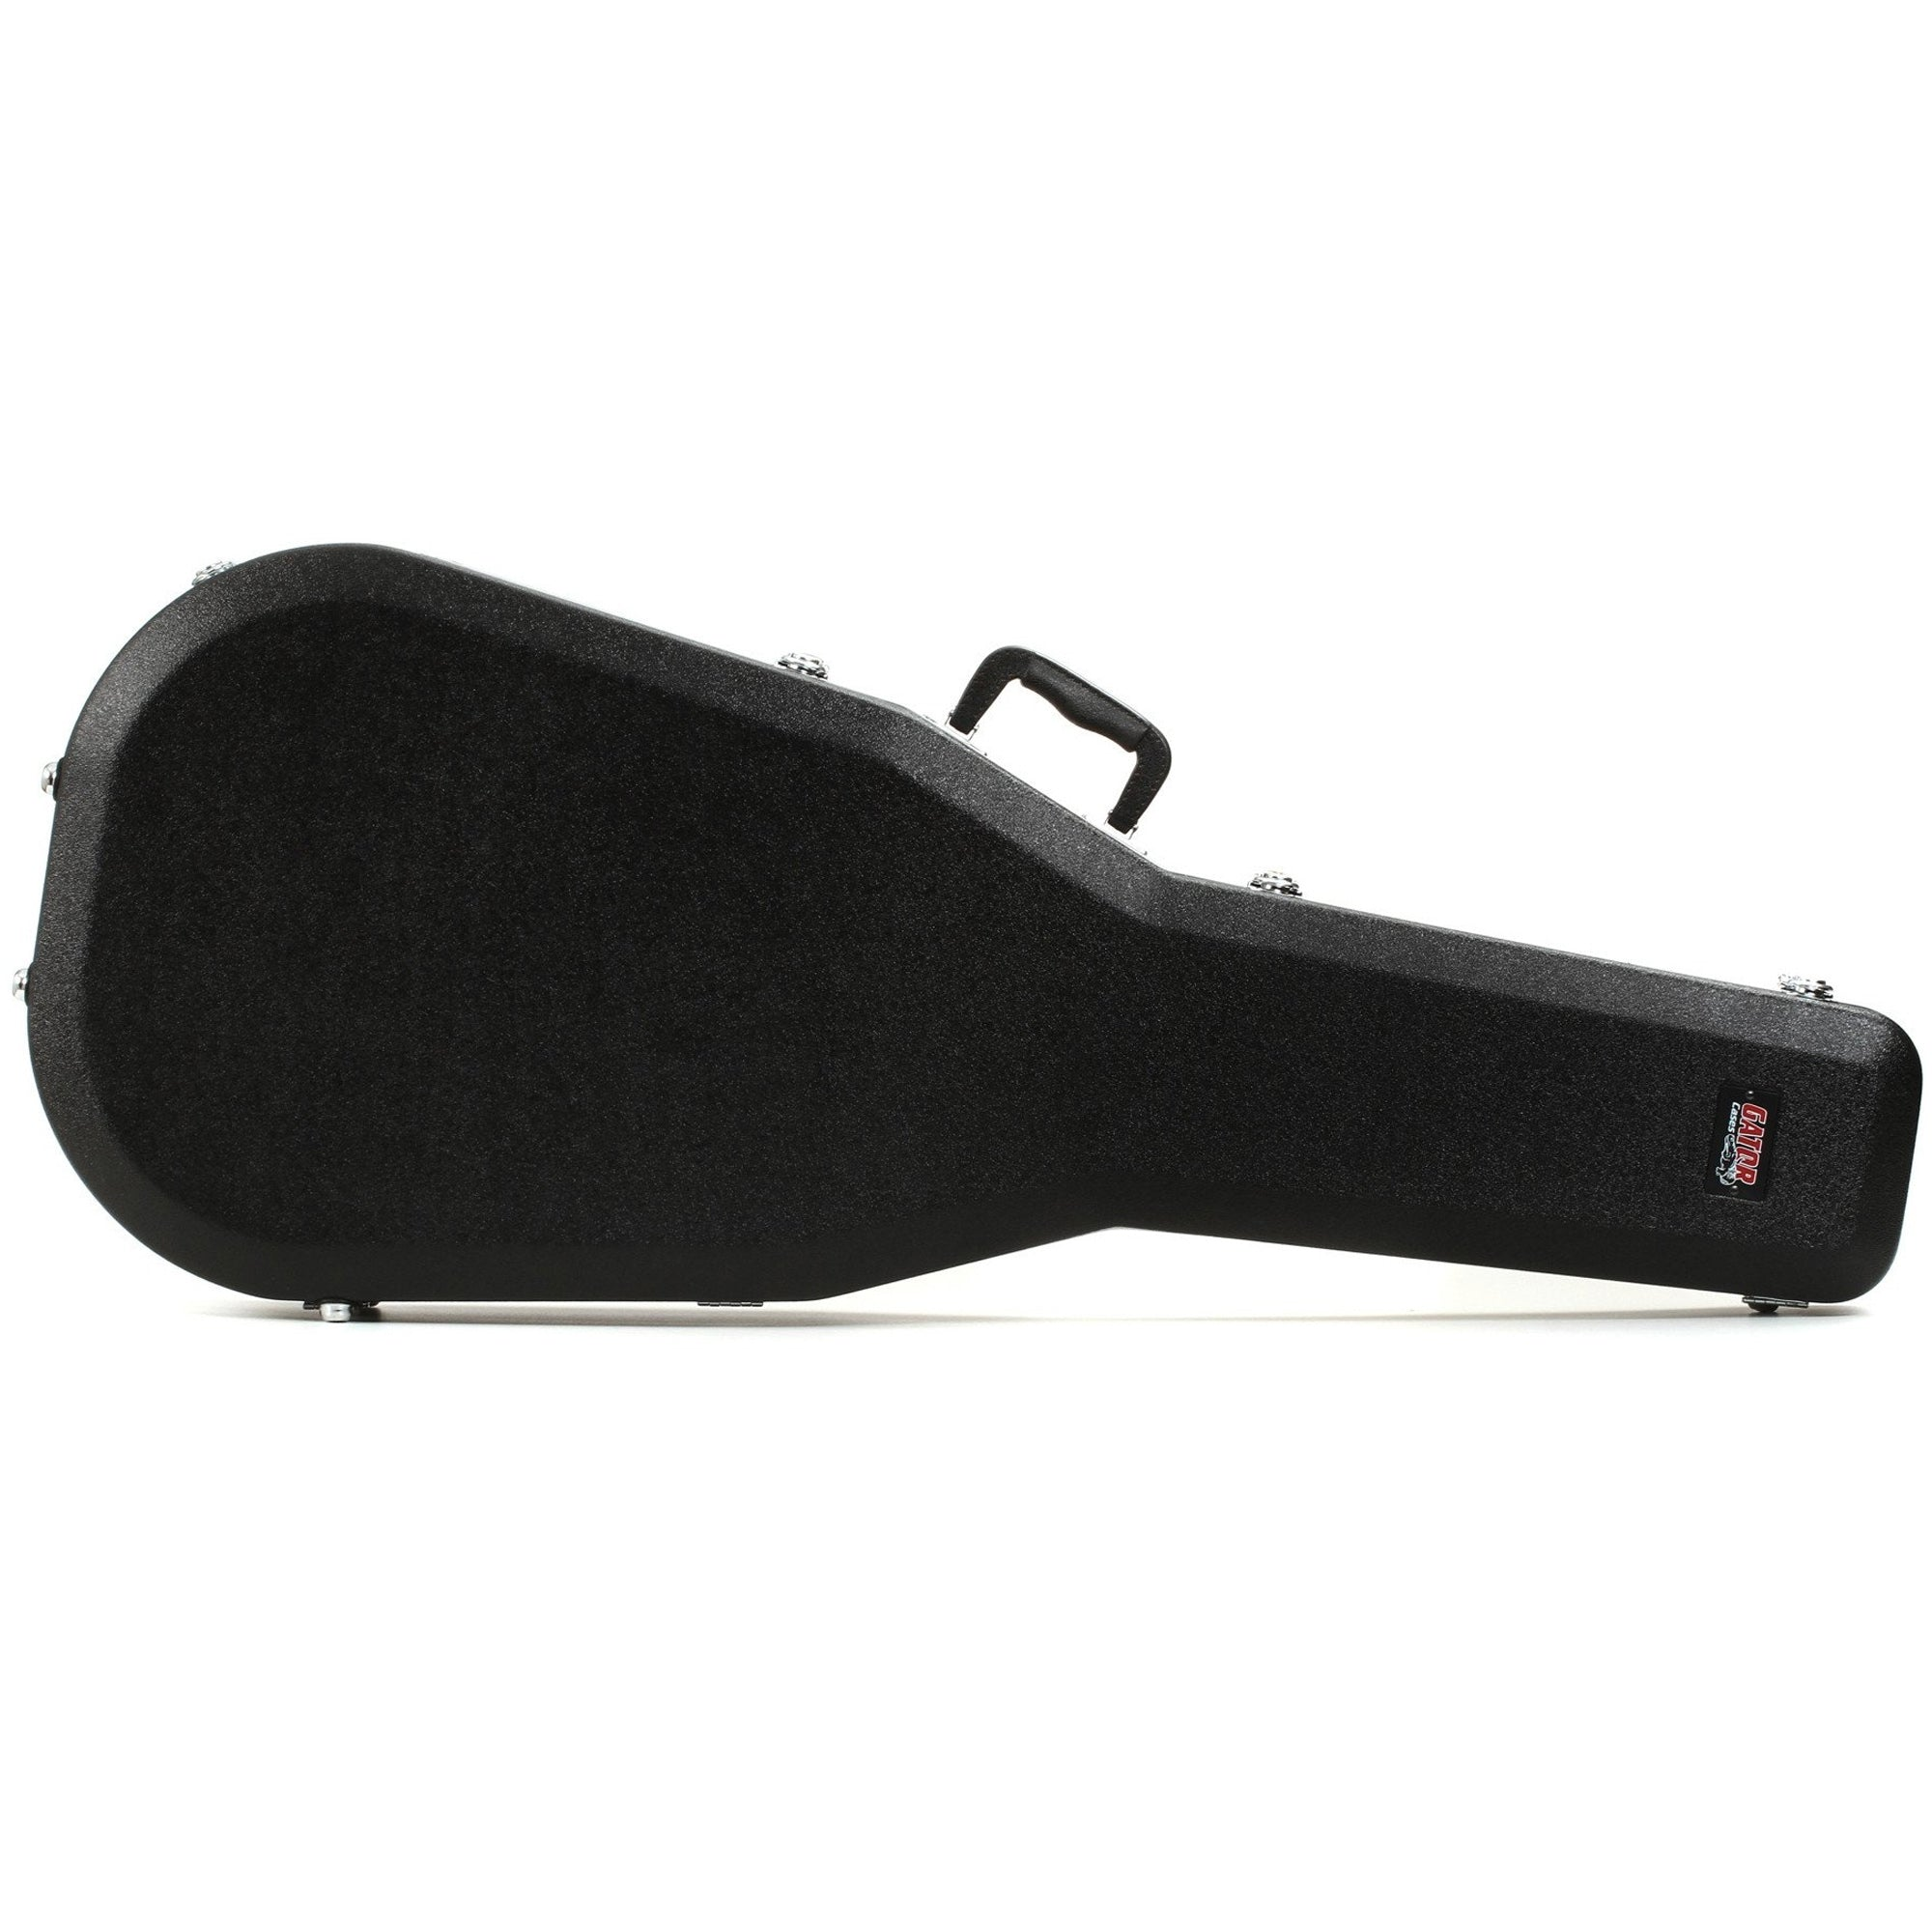 Gator Deluxe Dreadnought Guitar Case